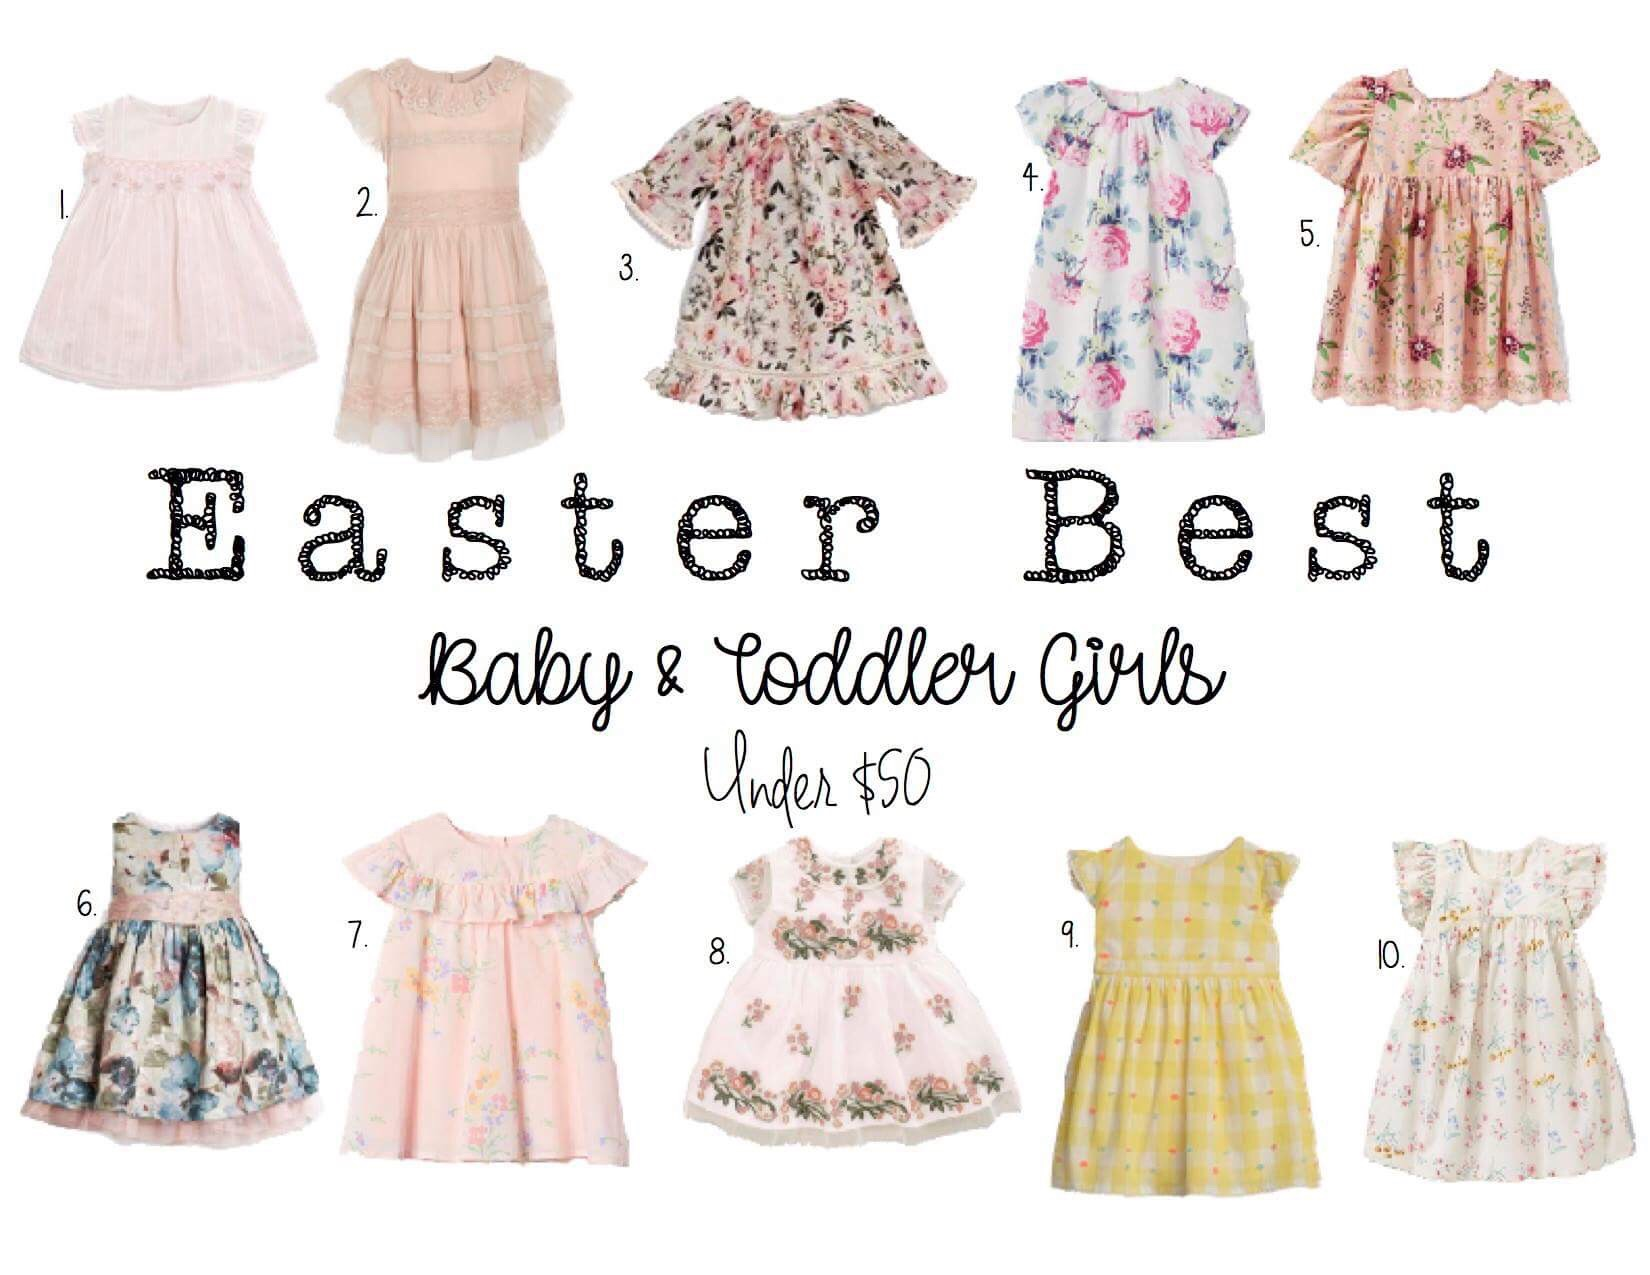 b5e3edac5c5a9 Here are some of my favorite, affordable Easter dresses for little girls!